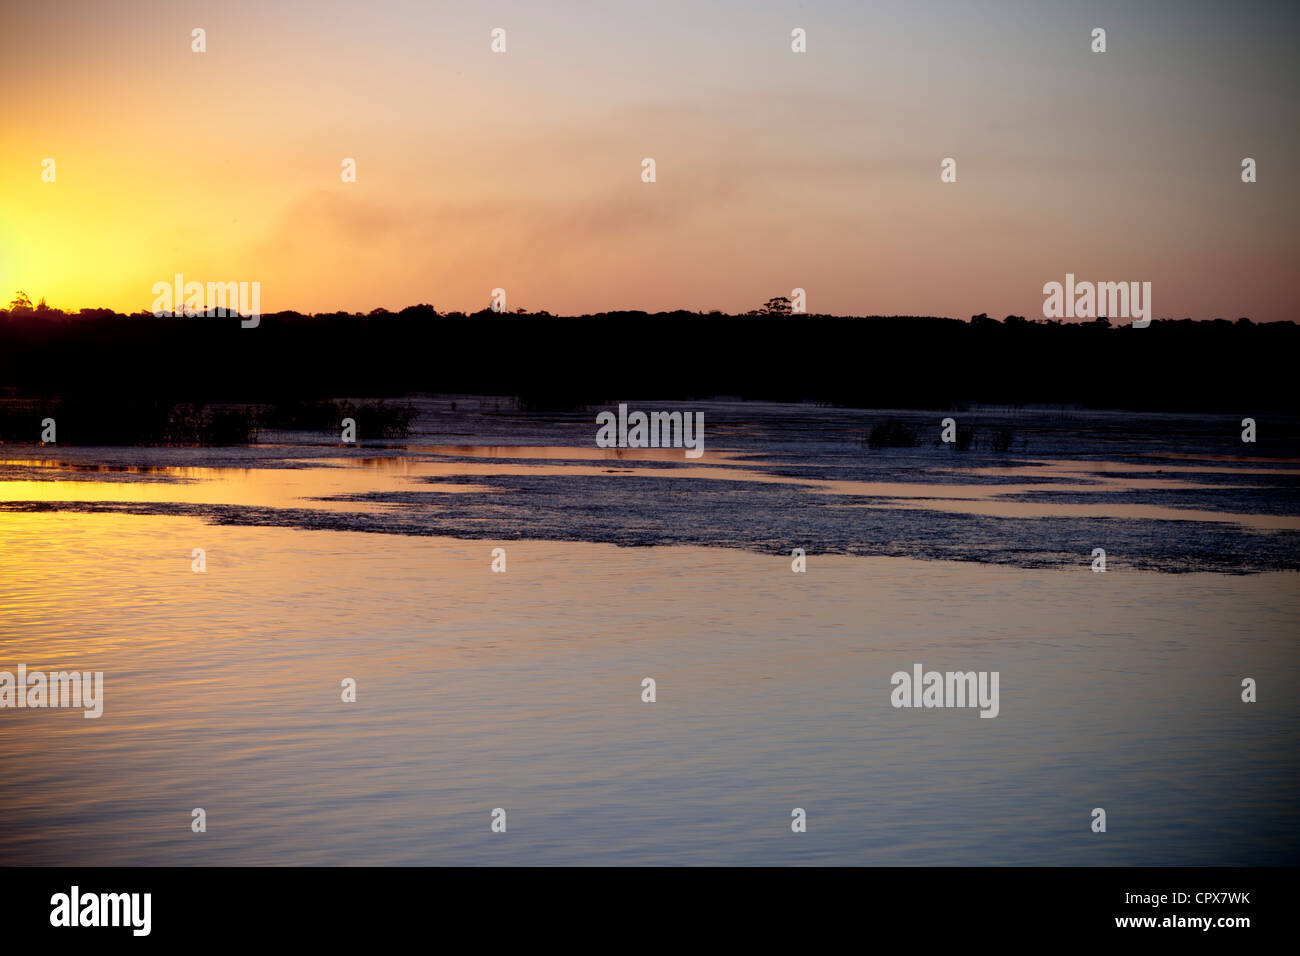 Overall view of a dam at dawn. - Stock Image